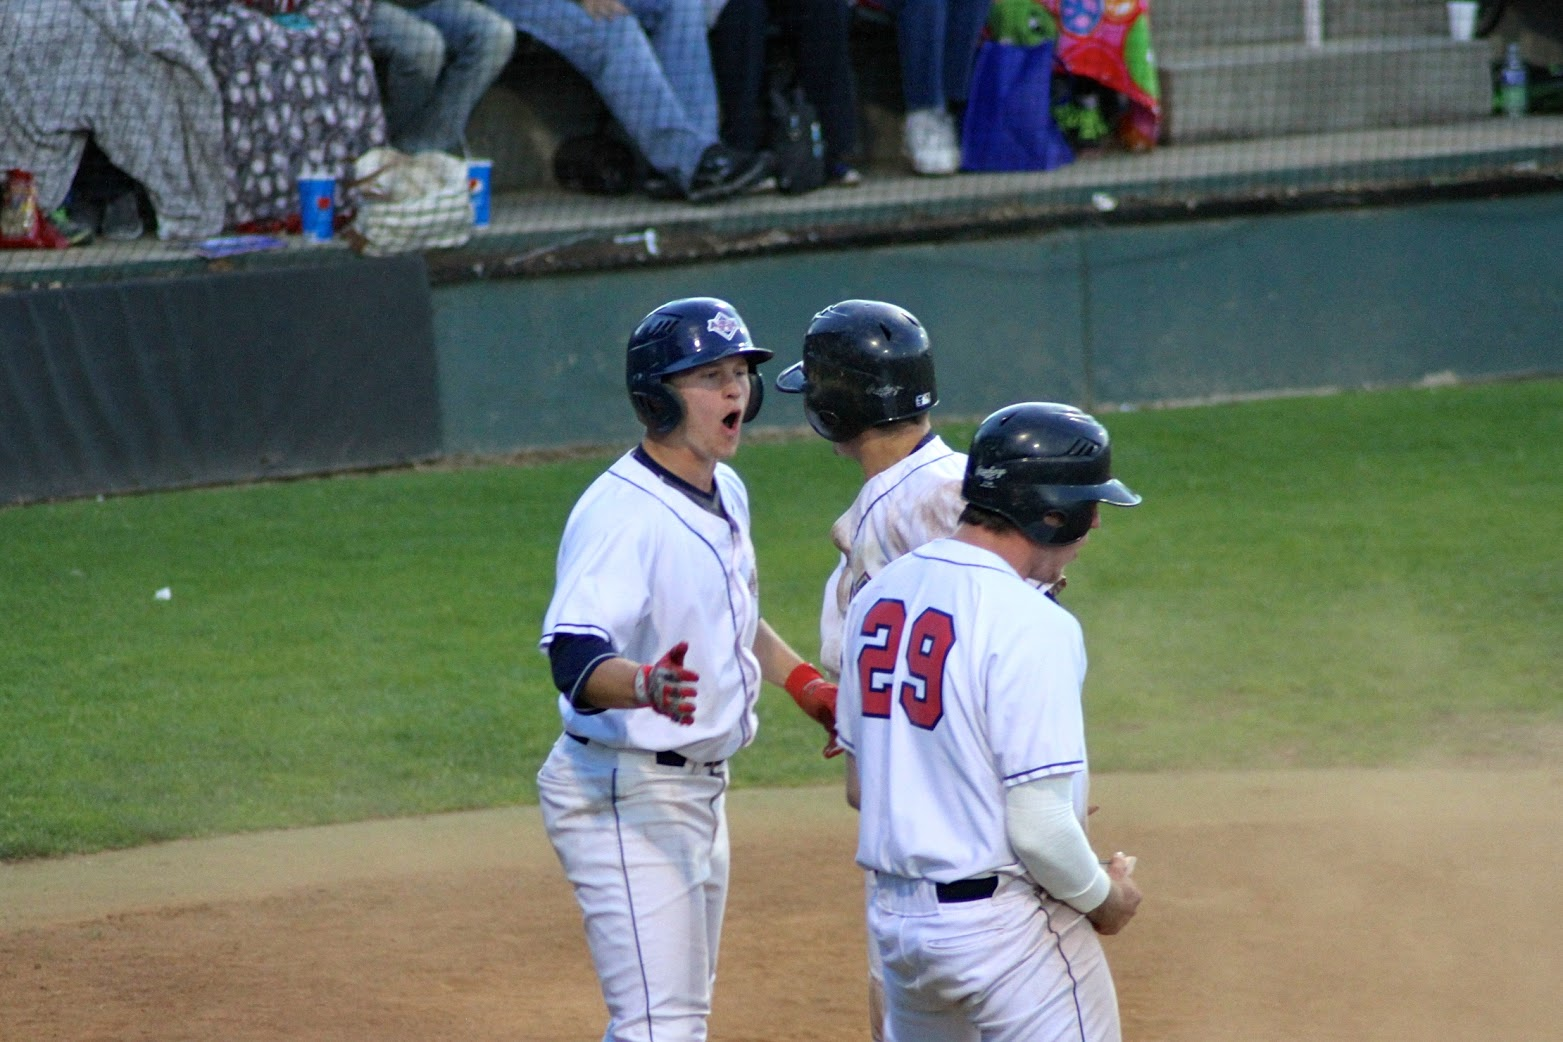 Jordan Rathbone, Steven Machtolf, and Ryan Murkle celebrate after being driven in on a bases-clearing double for Haydan Hastings in the sixth inning of a 6-3, AppleSox win, Saturday.